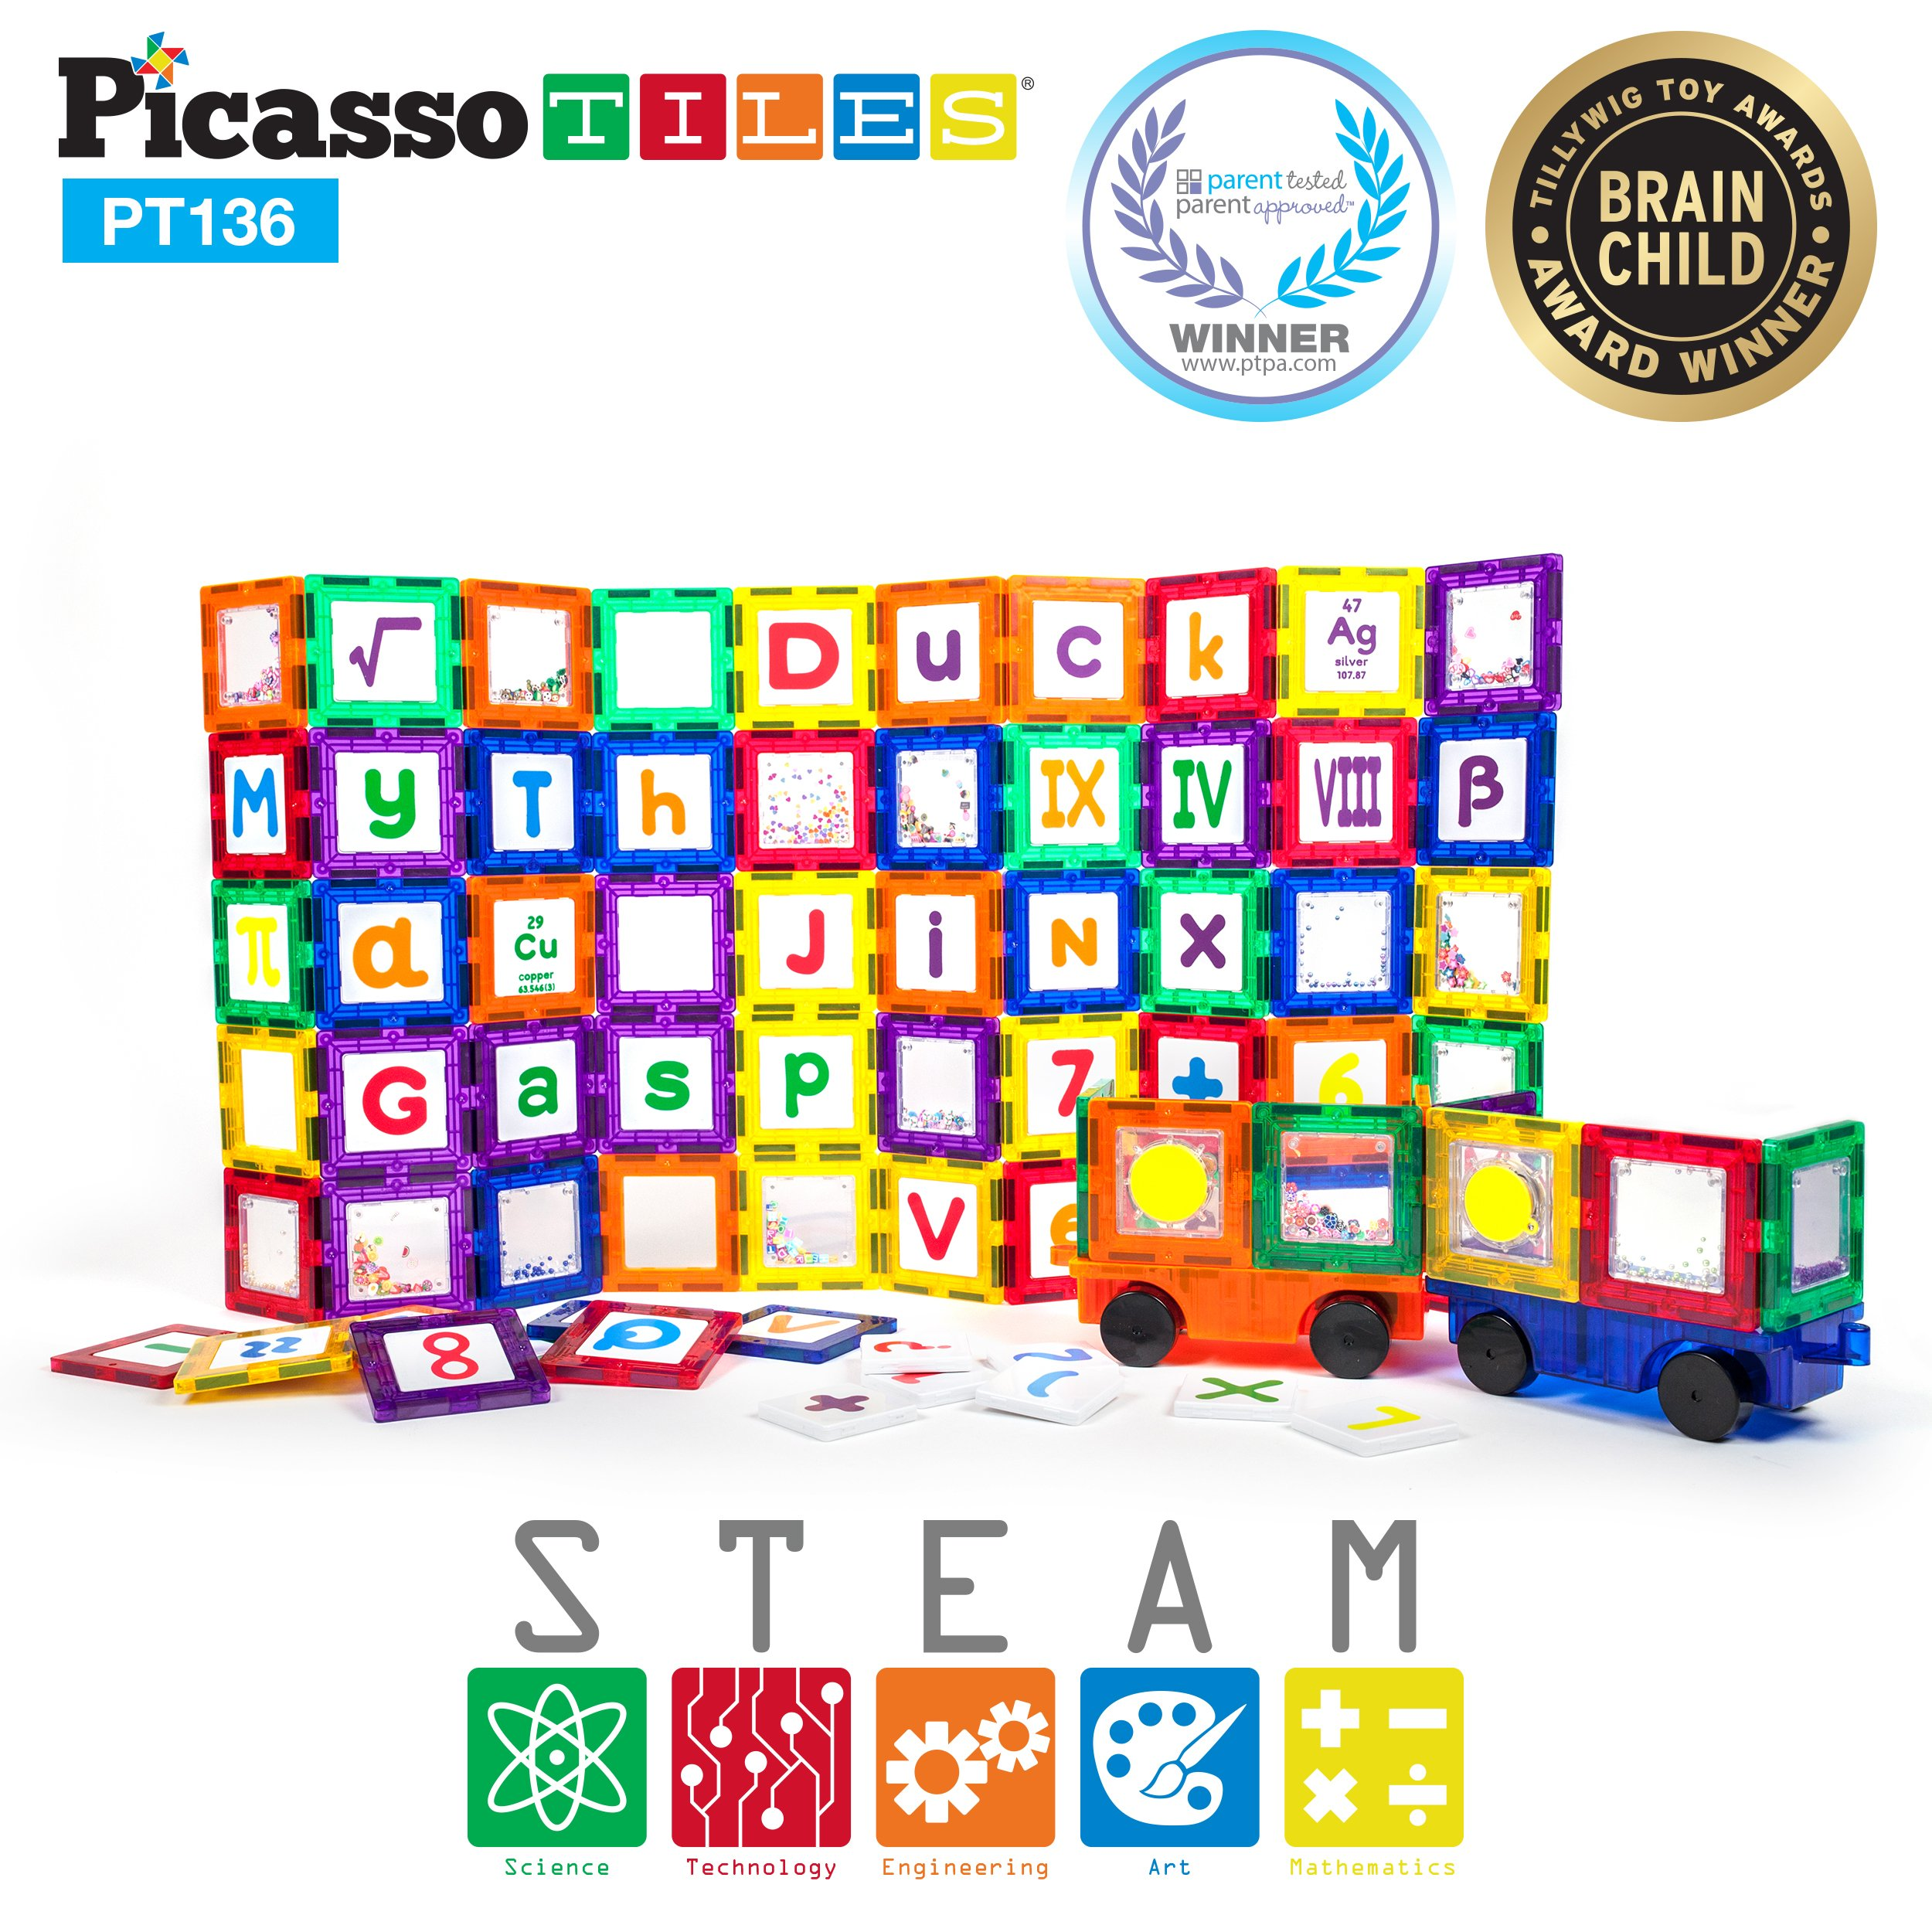 PicassoTiles 136 Piece S.T.E.A.M. Building Block Set with 66 Magnetized Clip-in Insert Cards Toy Construction Kit PT136 Magnet Building Tiles Clear Color Magnetic 3D Educational Blocks Click-in Card